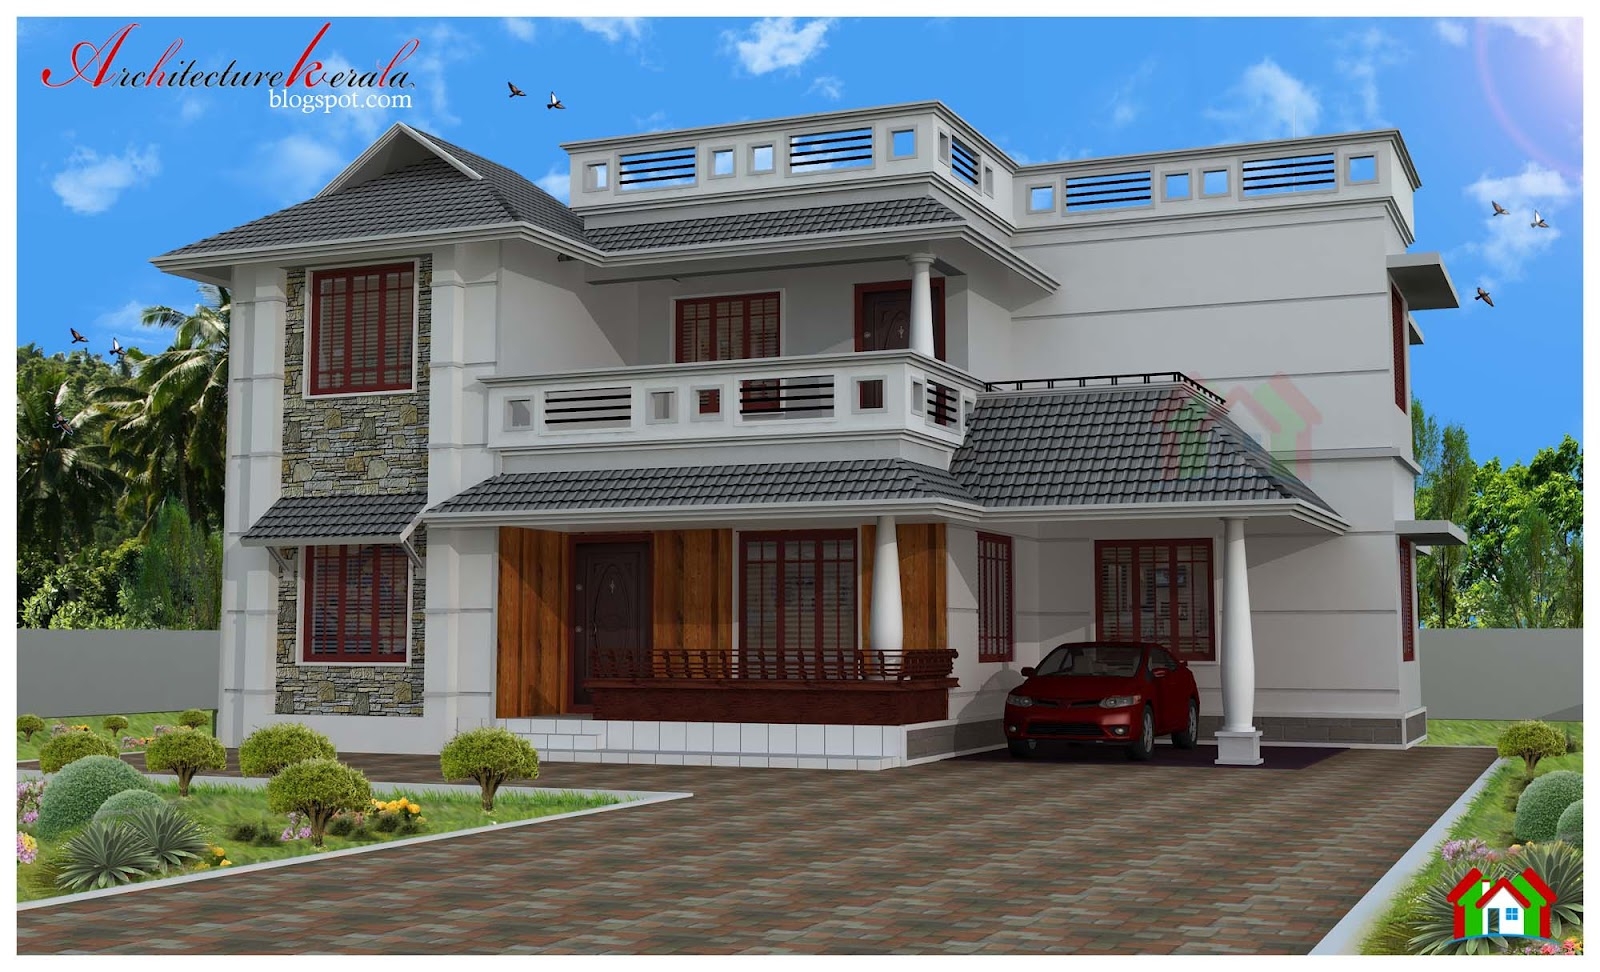 Architecture kerala four bed room house plan for Hous plans